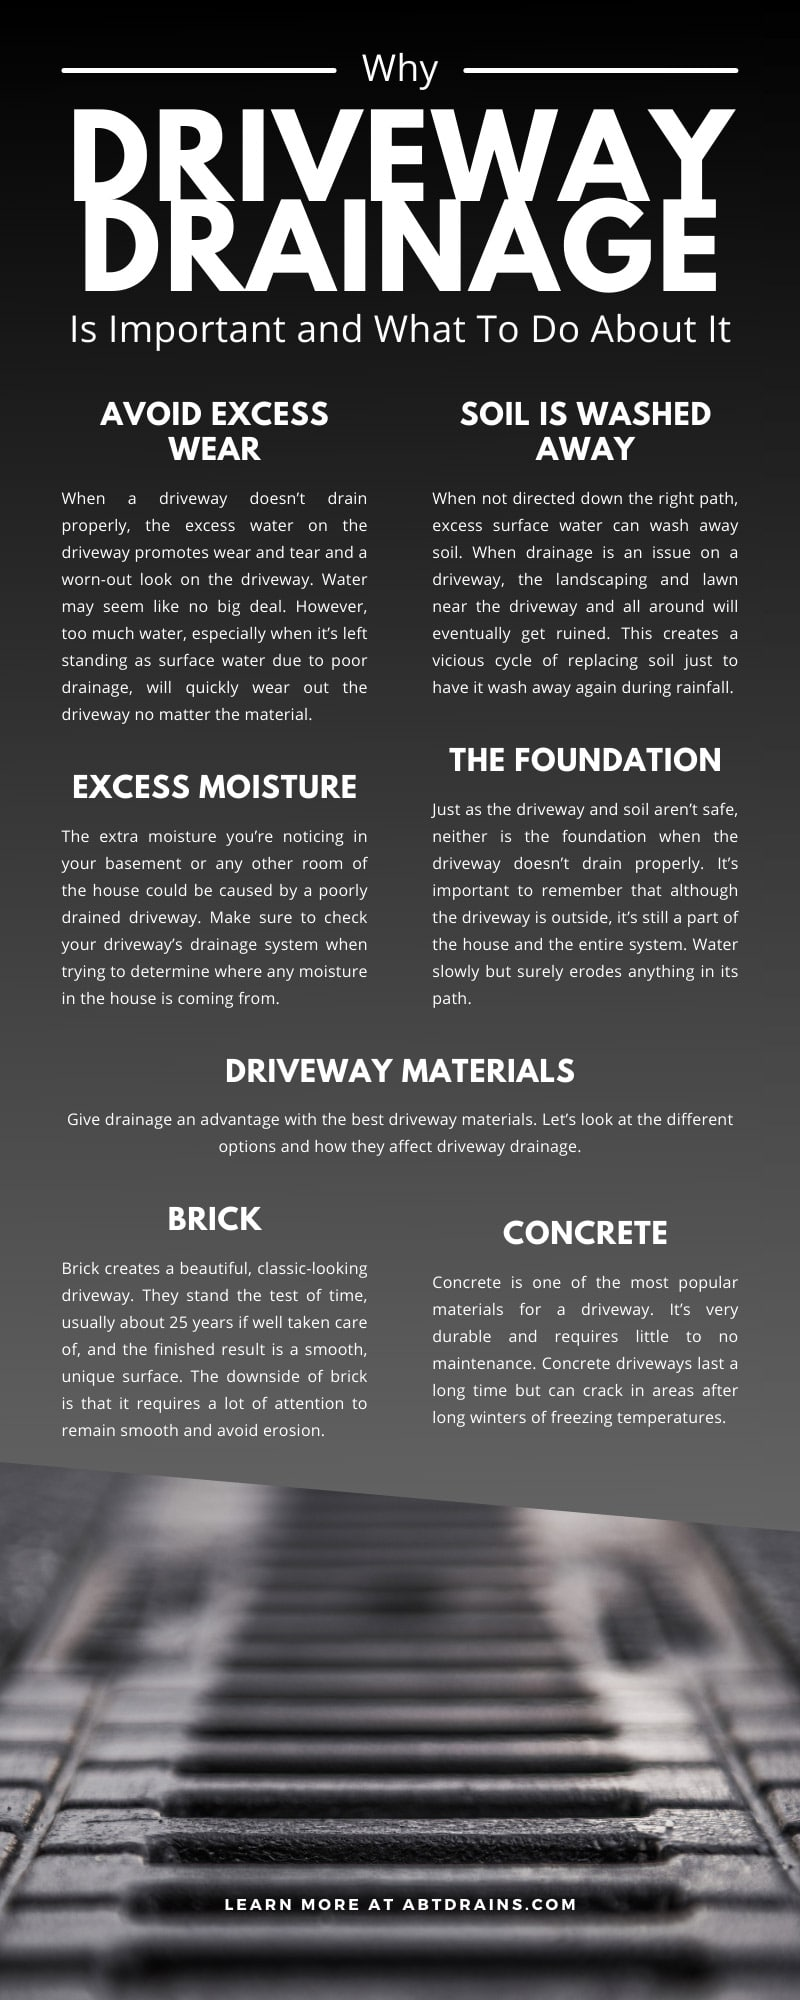 Why Driveway Drainage Is Important and What To Do About It